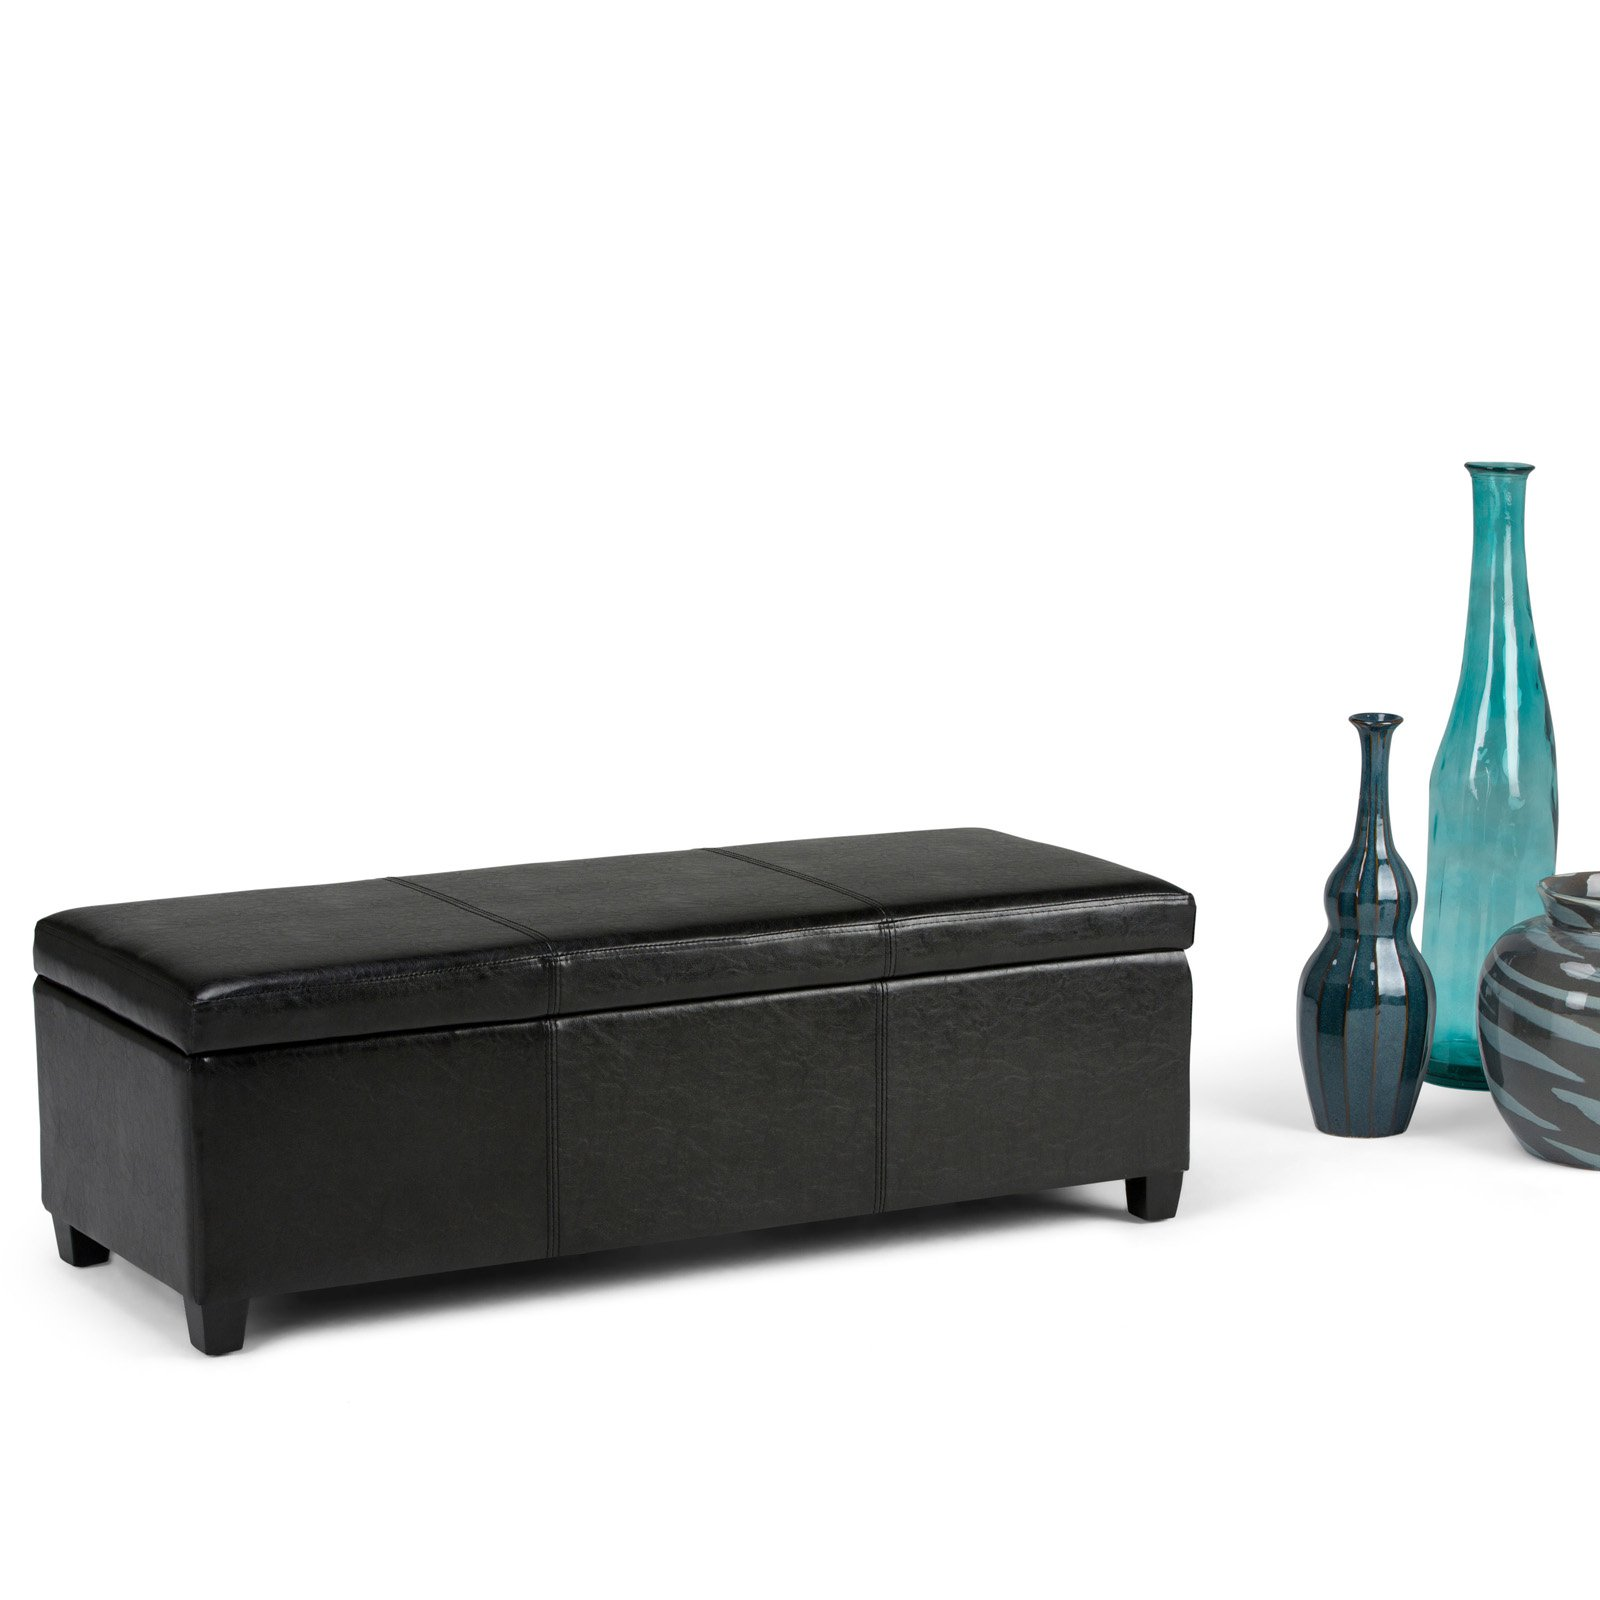 Simpli Home Avalon Large Storage Ottoman Bench   Walmart.com